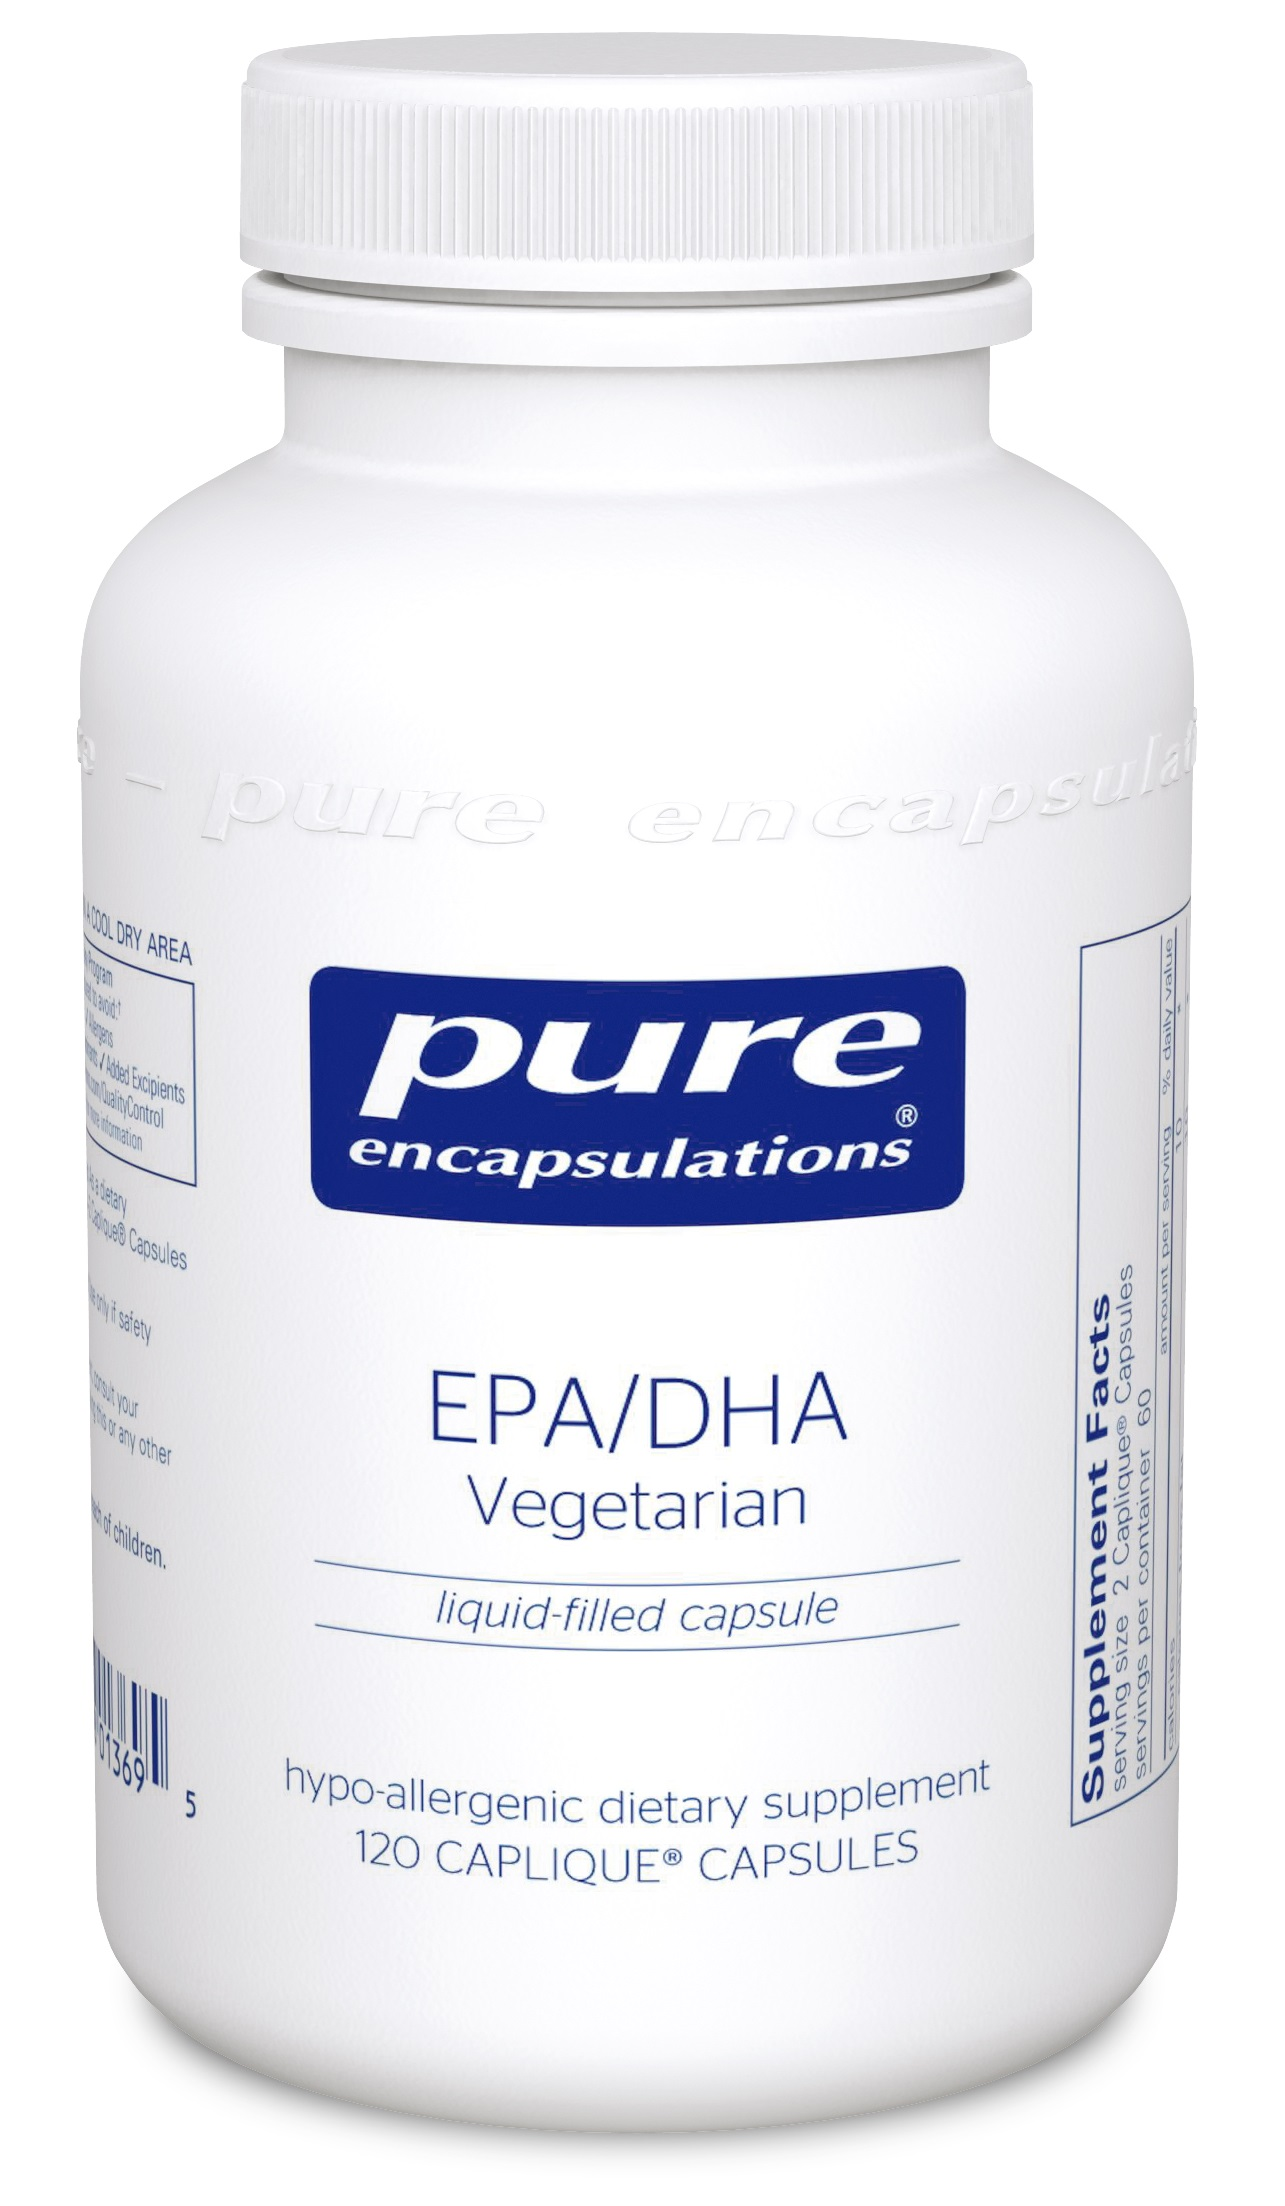 Pure Encapsulations EPA/DHA Vegetarian